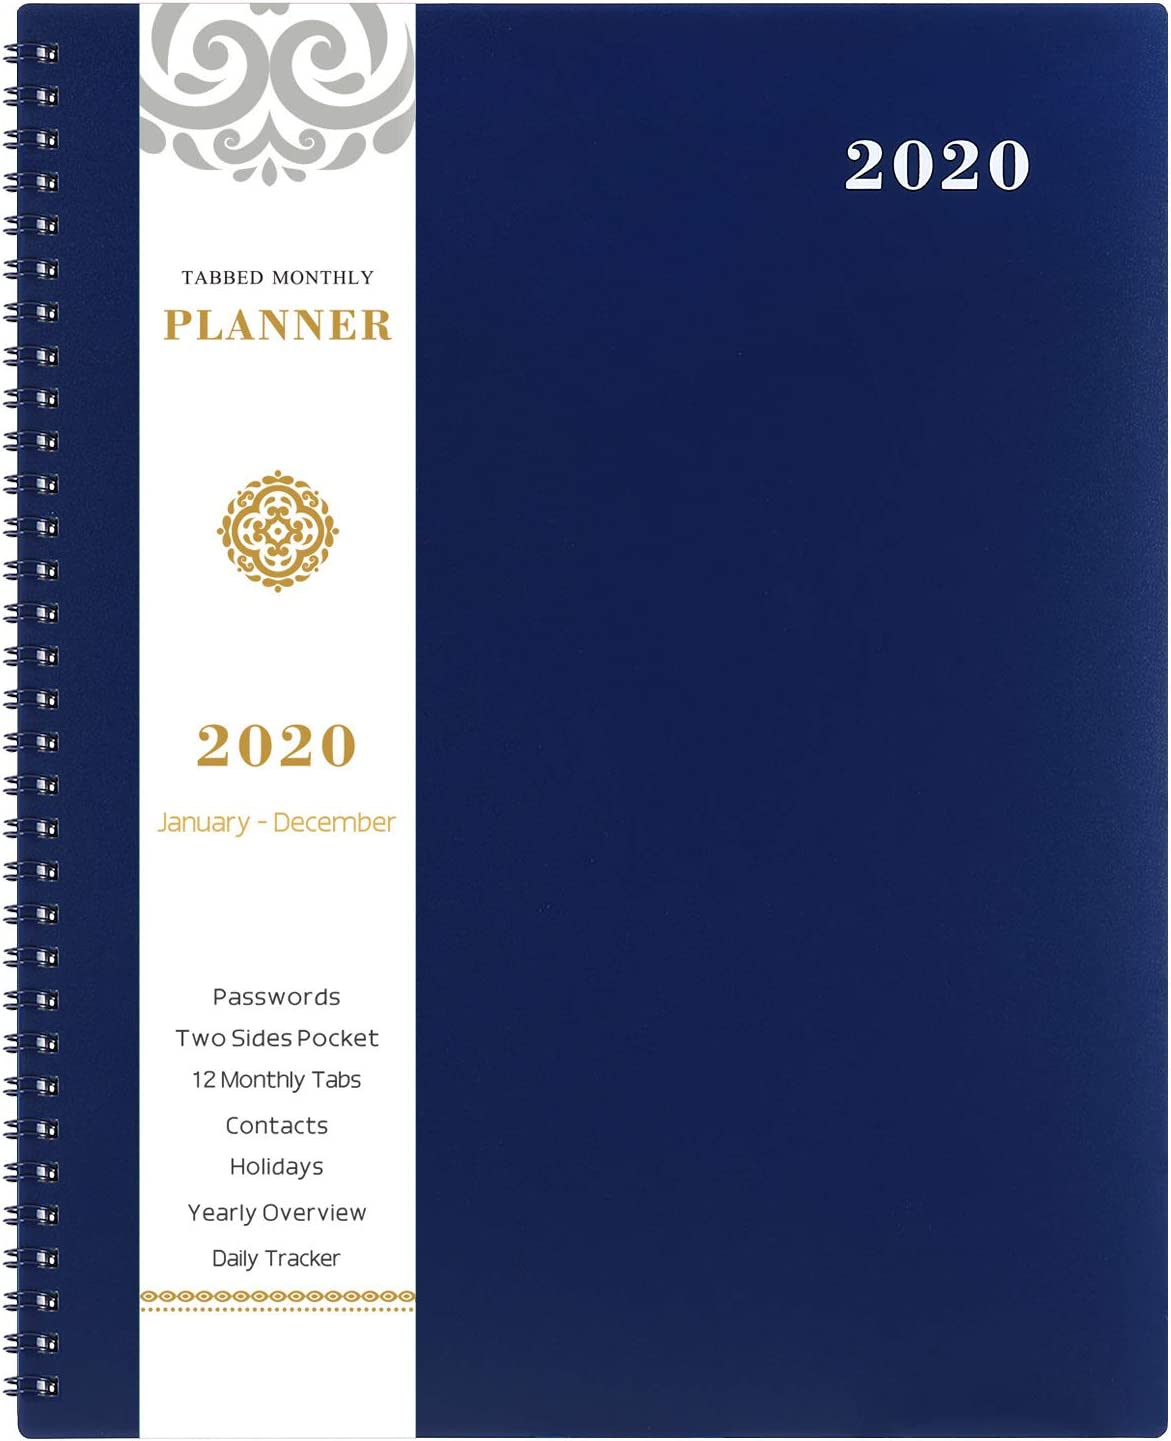 """2020 Monthly Planner - 12-Month Calendar Planner with Tabs & Pocket & Label, Contacts and Passwords, 8.5"""" x 11"""", Thick Paper, January - December 2020, Twin-Wire Binding - Navy Blue by Artfan"""